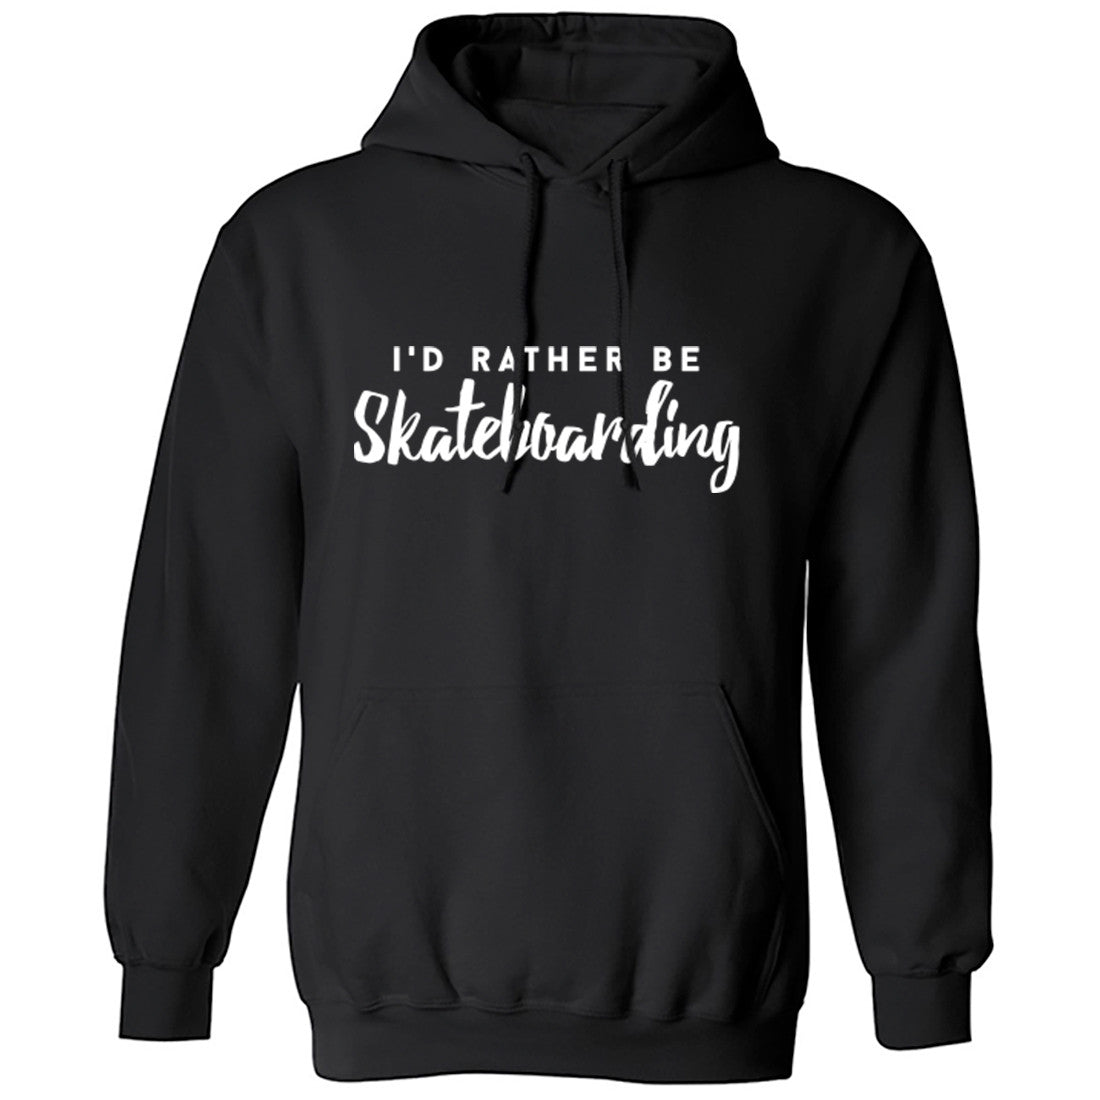 I'd Rather Be Skateboarding Unisex Hoodie K0208 - Illustrated Identity Ltd.